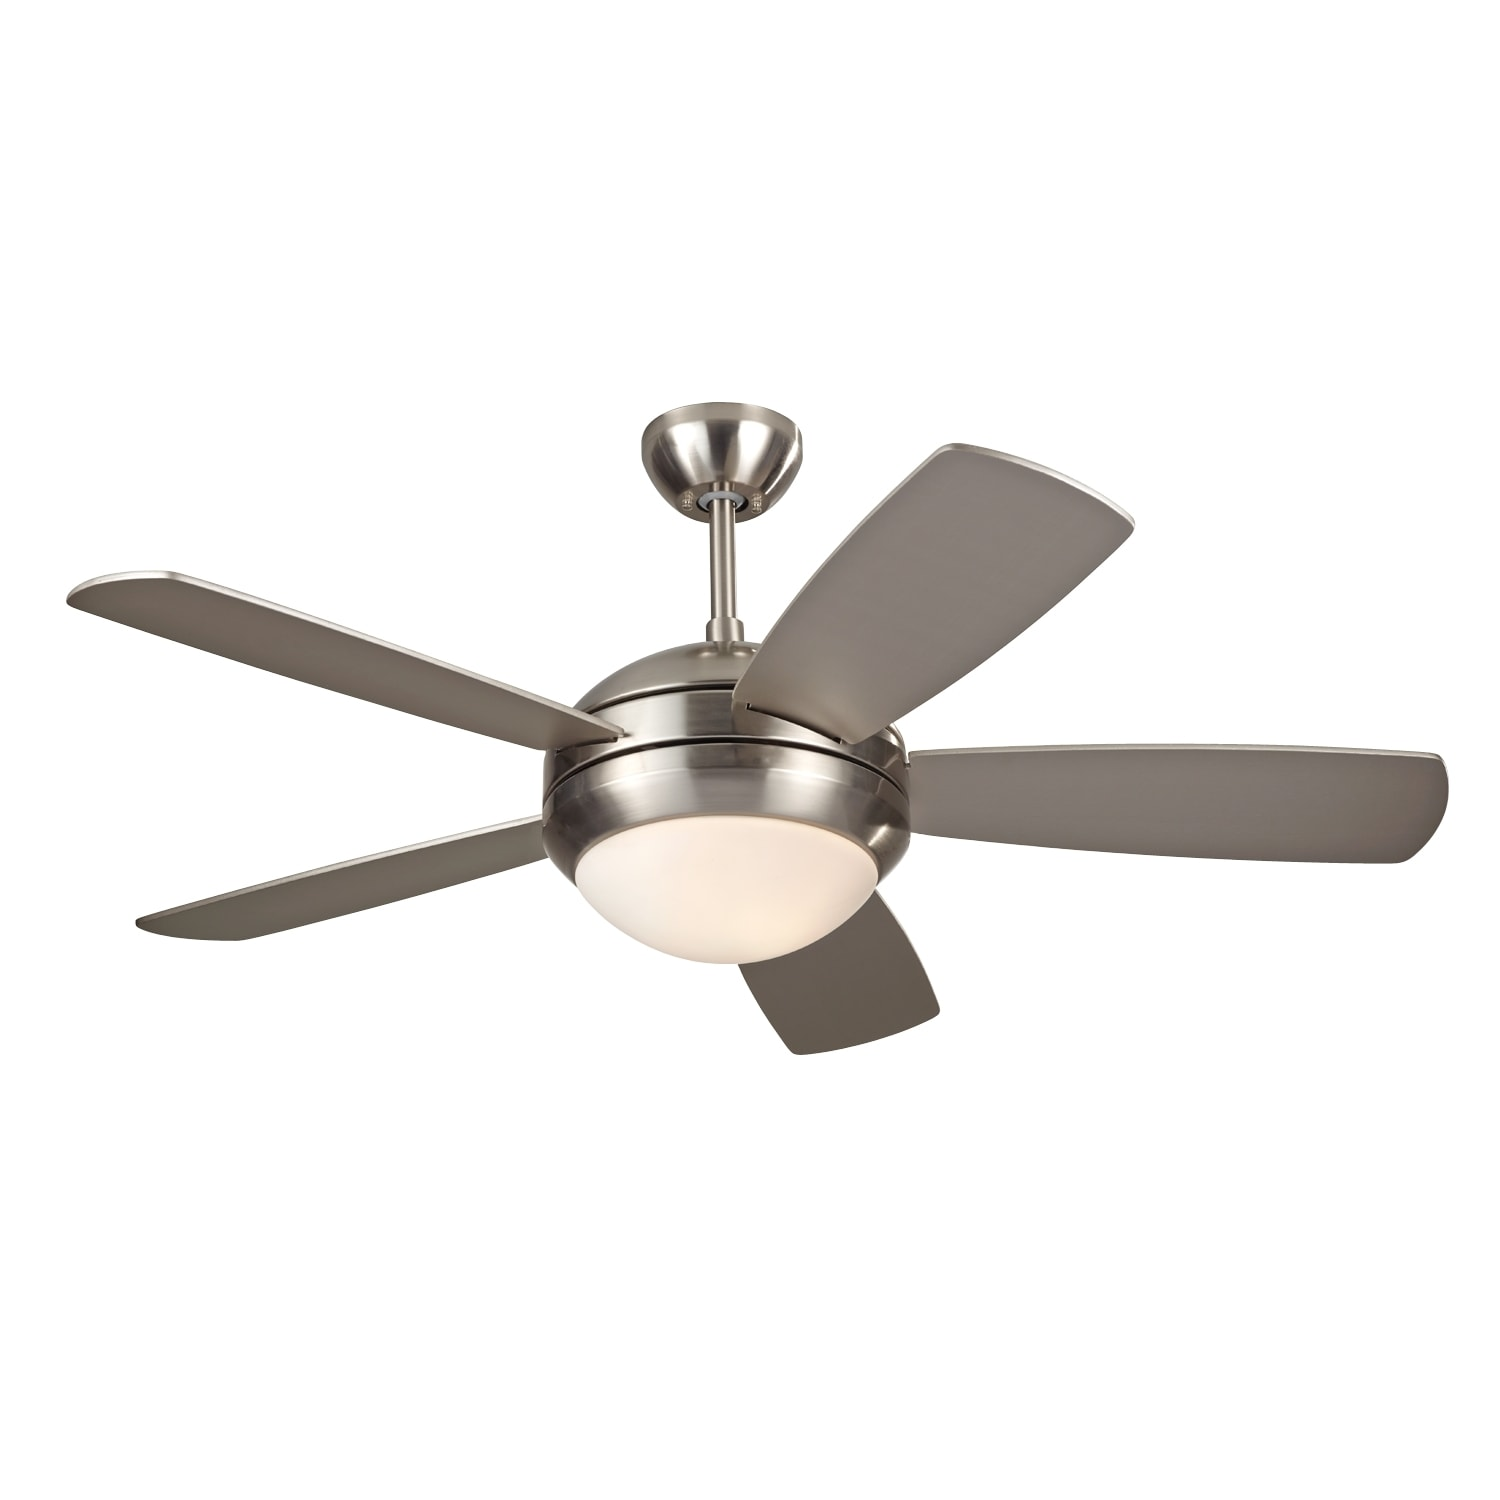 Monte Carlo Discus II Brushed Steel 44 inch Ceiling Fan Free